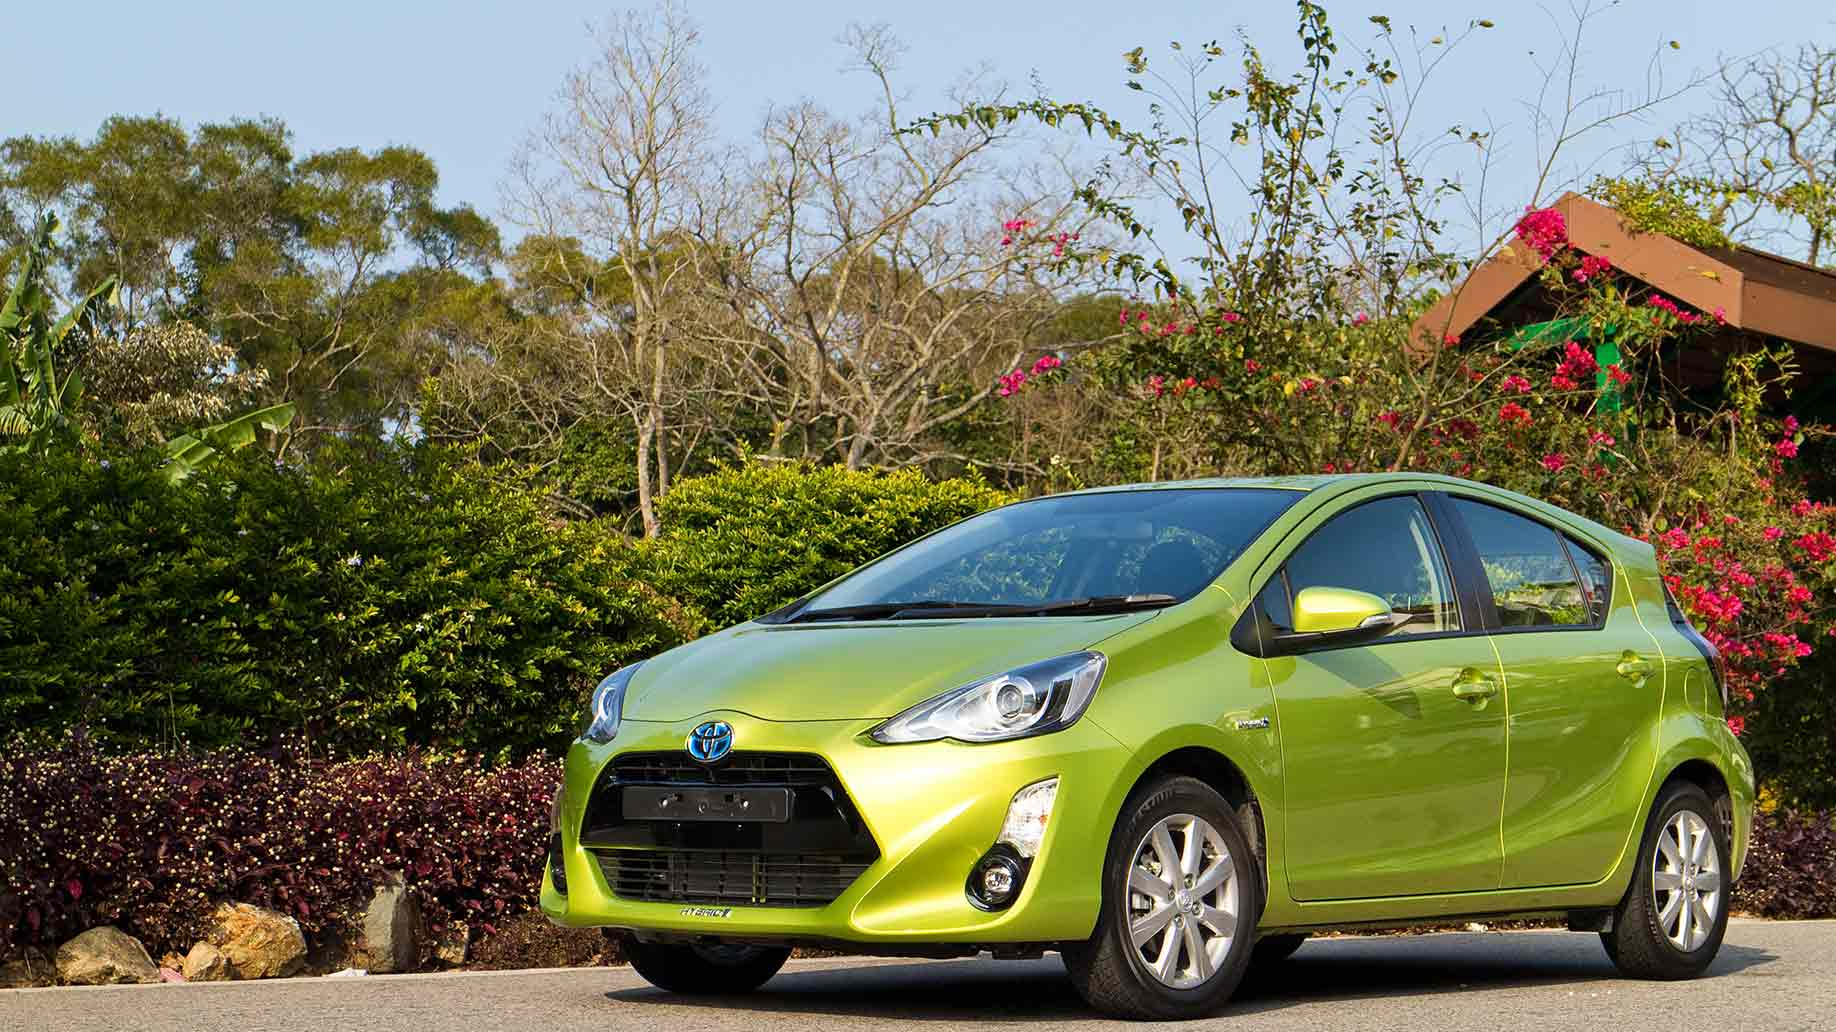 Hybrid Cars Pros And Cons Benefits Problems